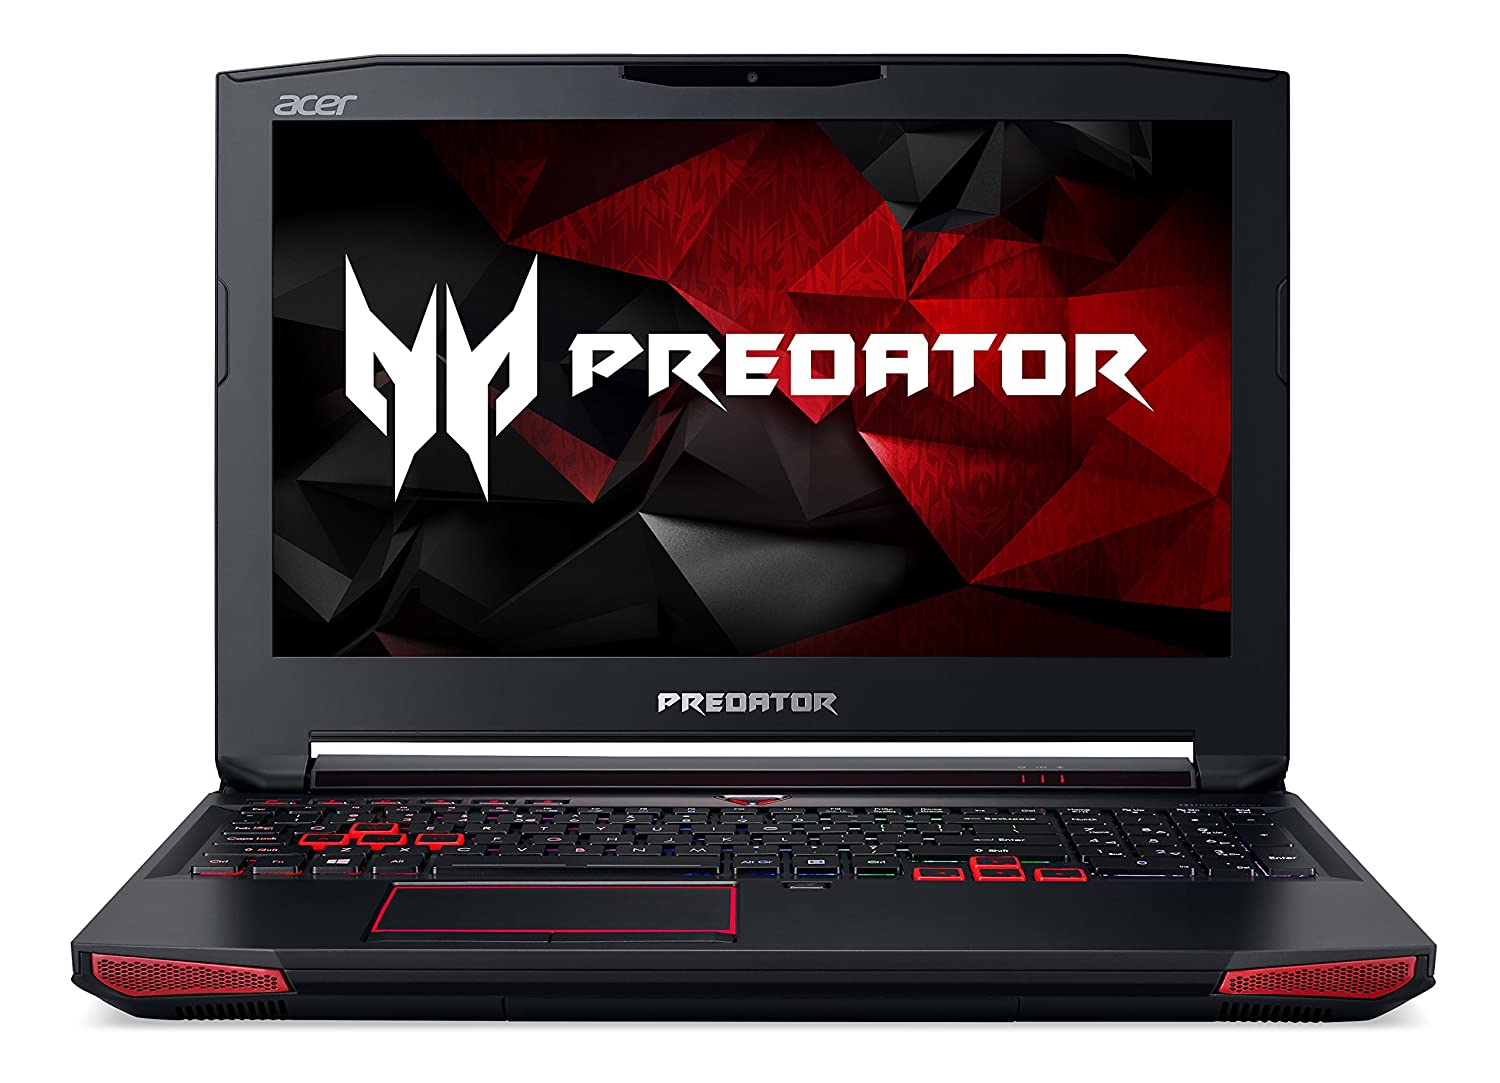 Acer Predator G3120 AMD SATA AHCI Windows